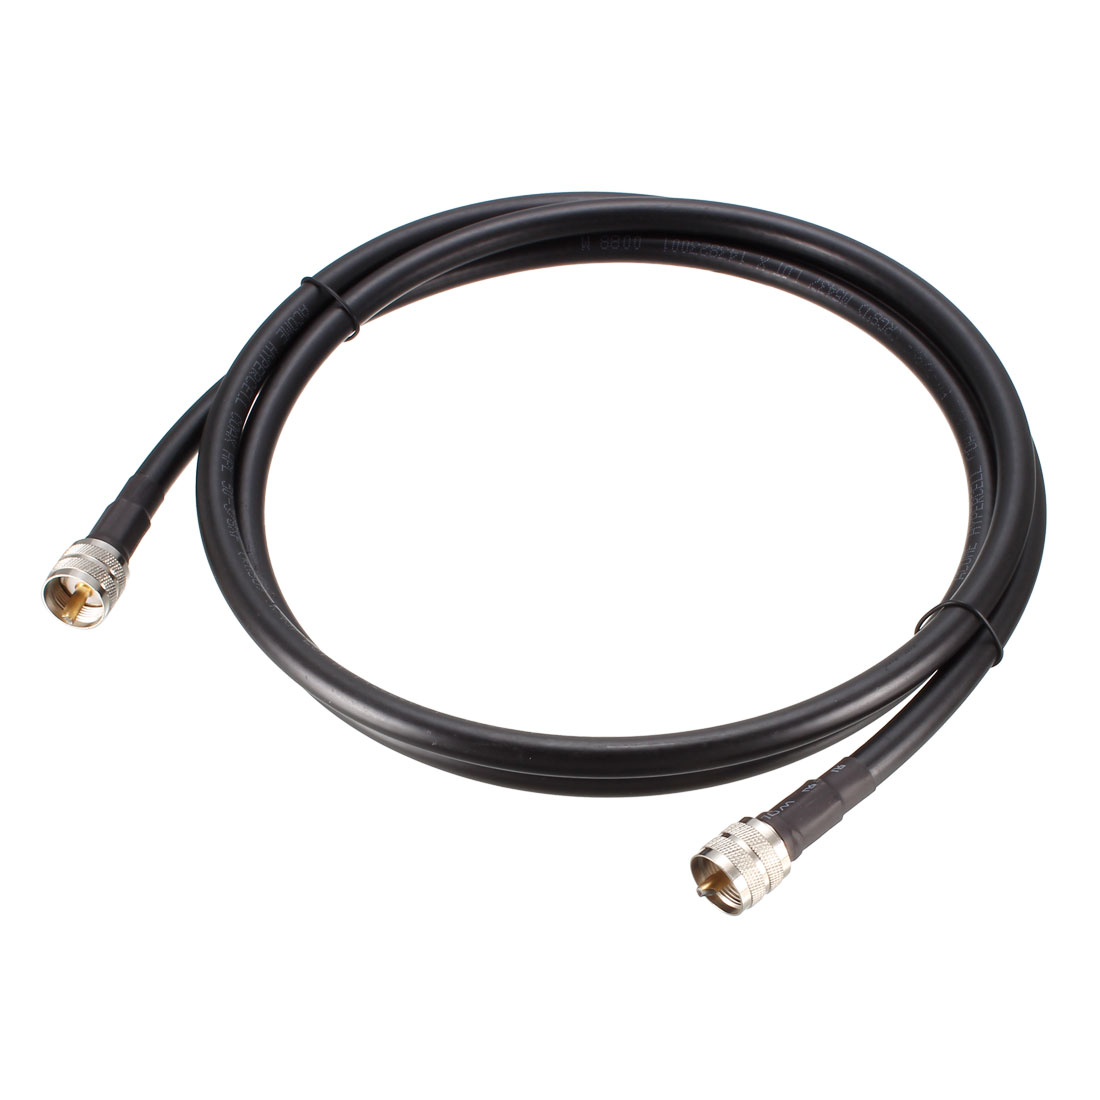 RG8U Coaxial Cable With Pl-259 Male Connectors for CB/Ham Radio 6 ft